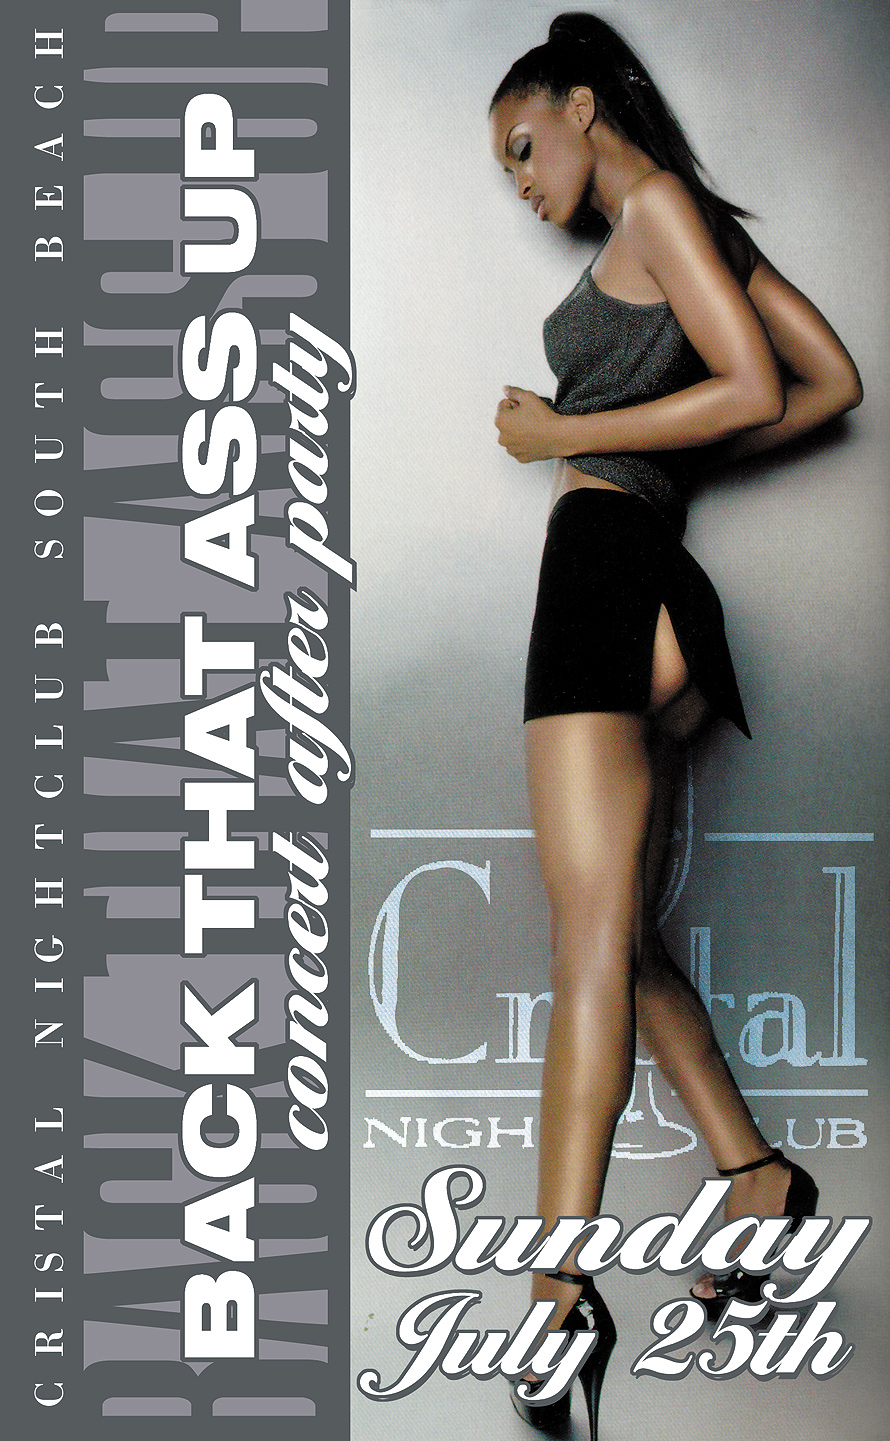 Back That Ass Up at Club Cristal